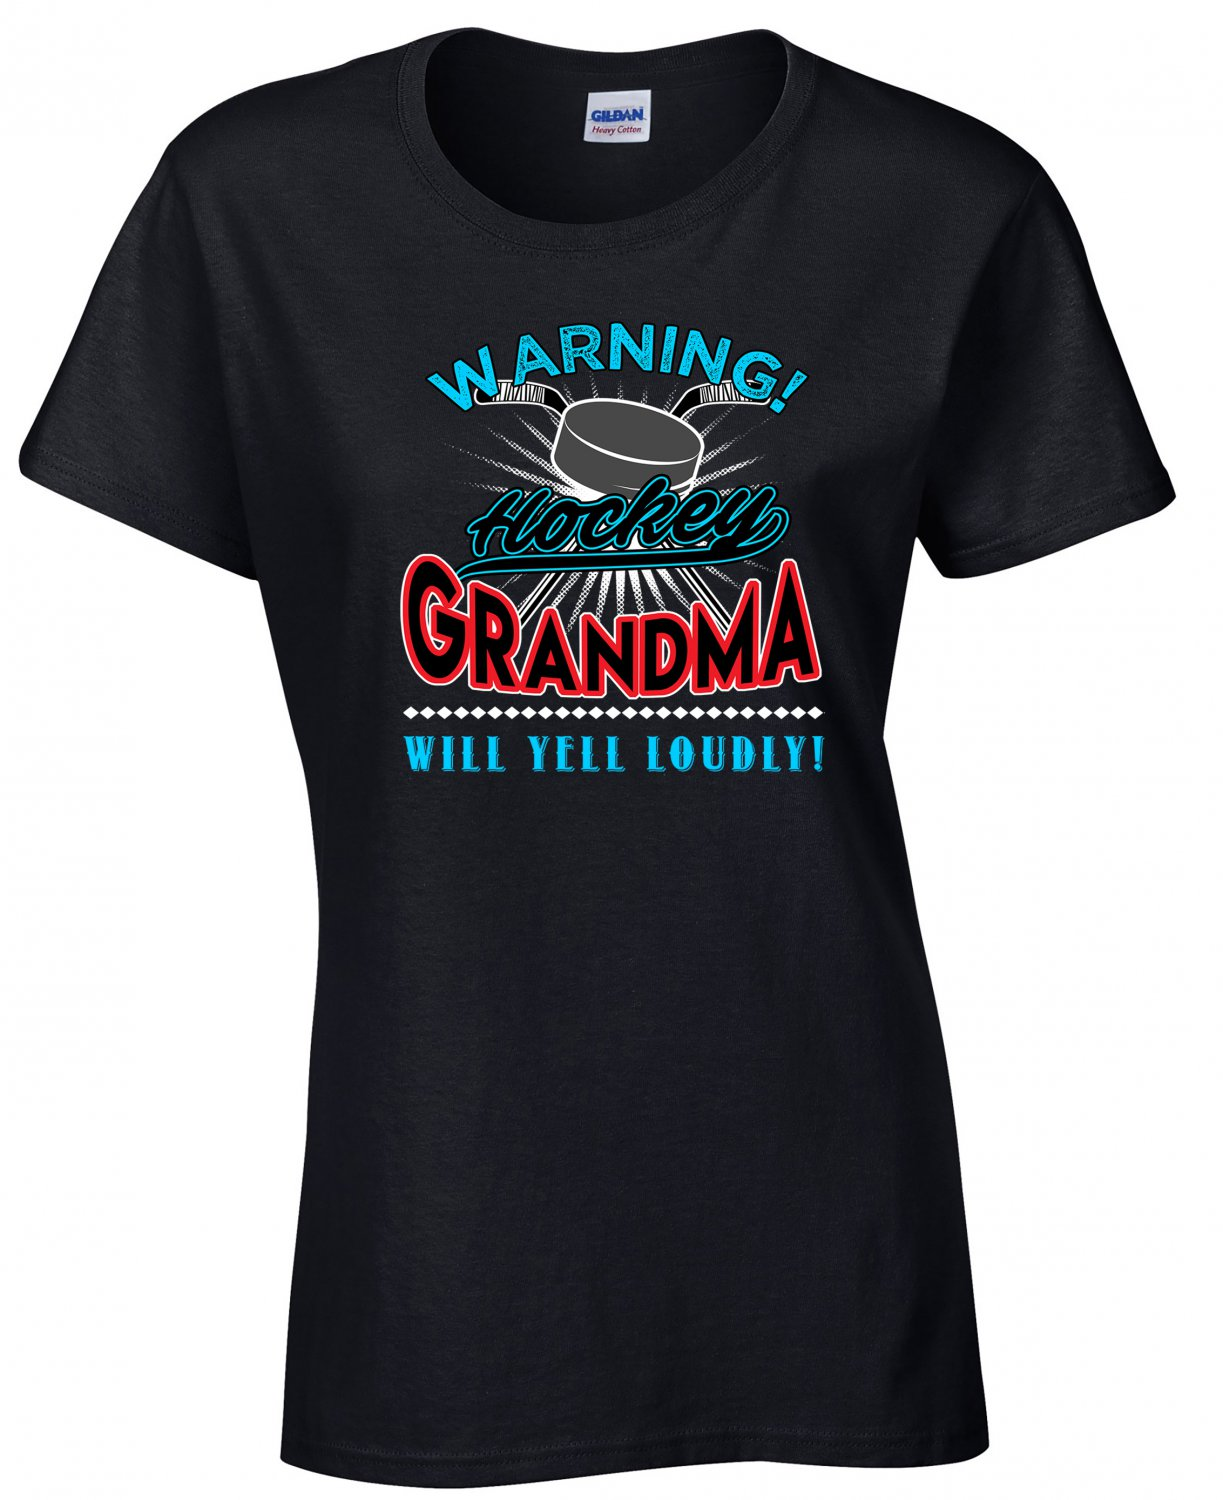 Hockey Grandma, Warning Hockey  Grandma Will Yell Loudly Shirt